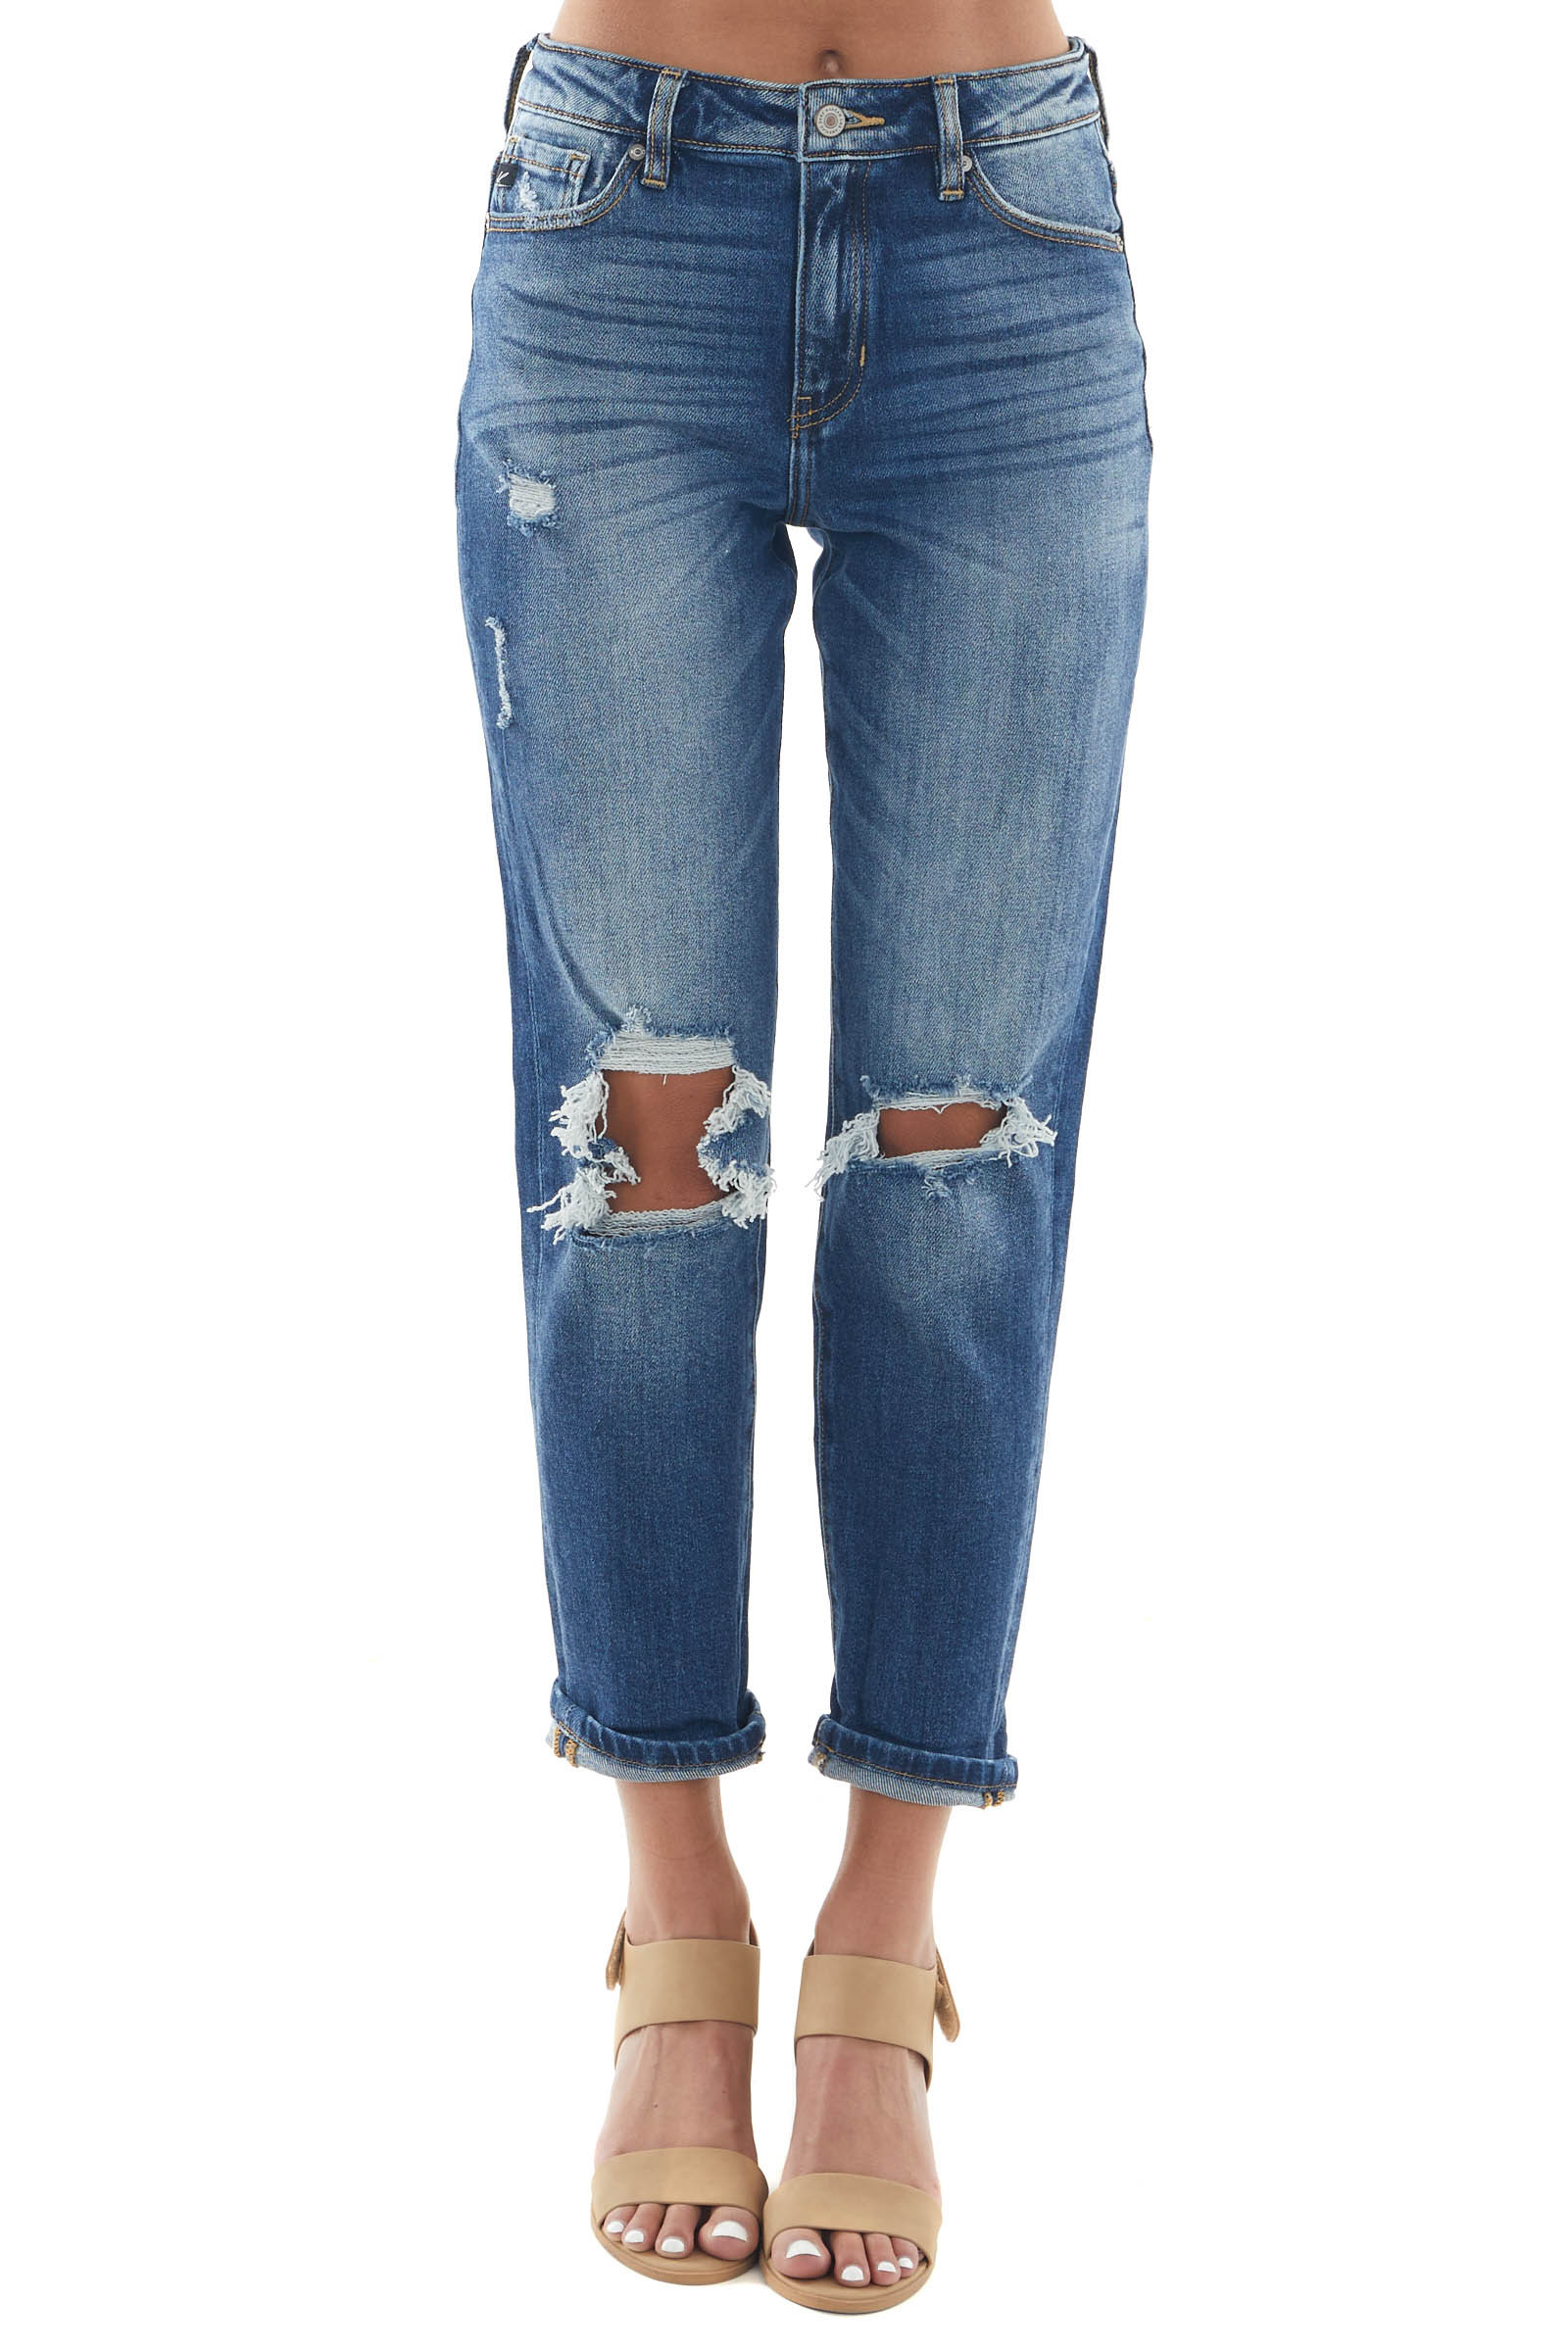 Dark Wash High Rise Knee Torn Mom Fit Jeans